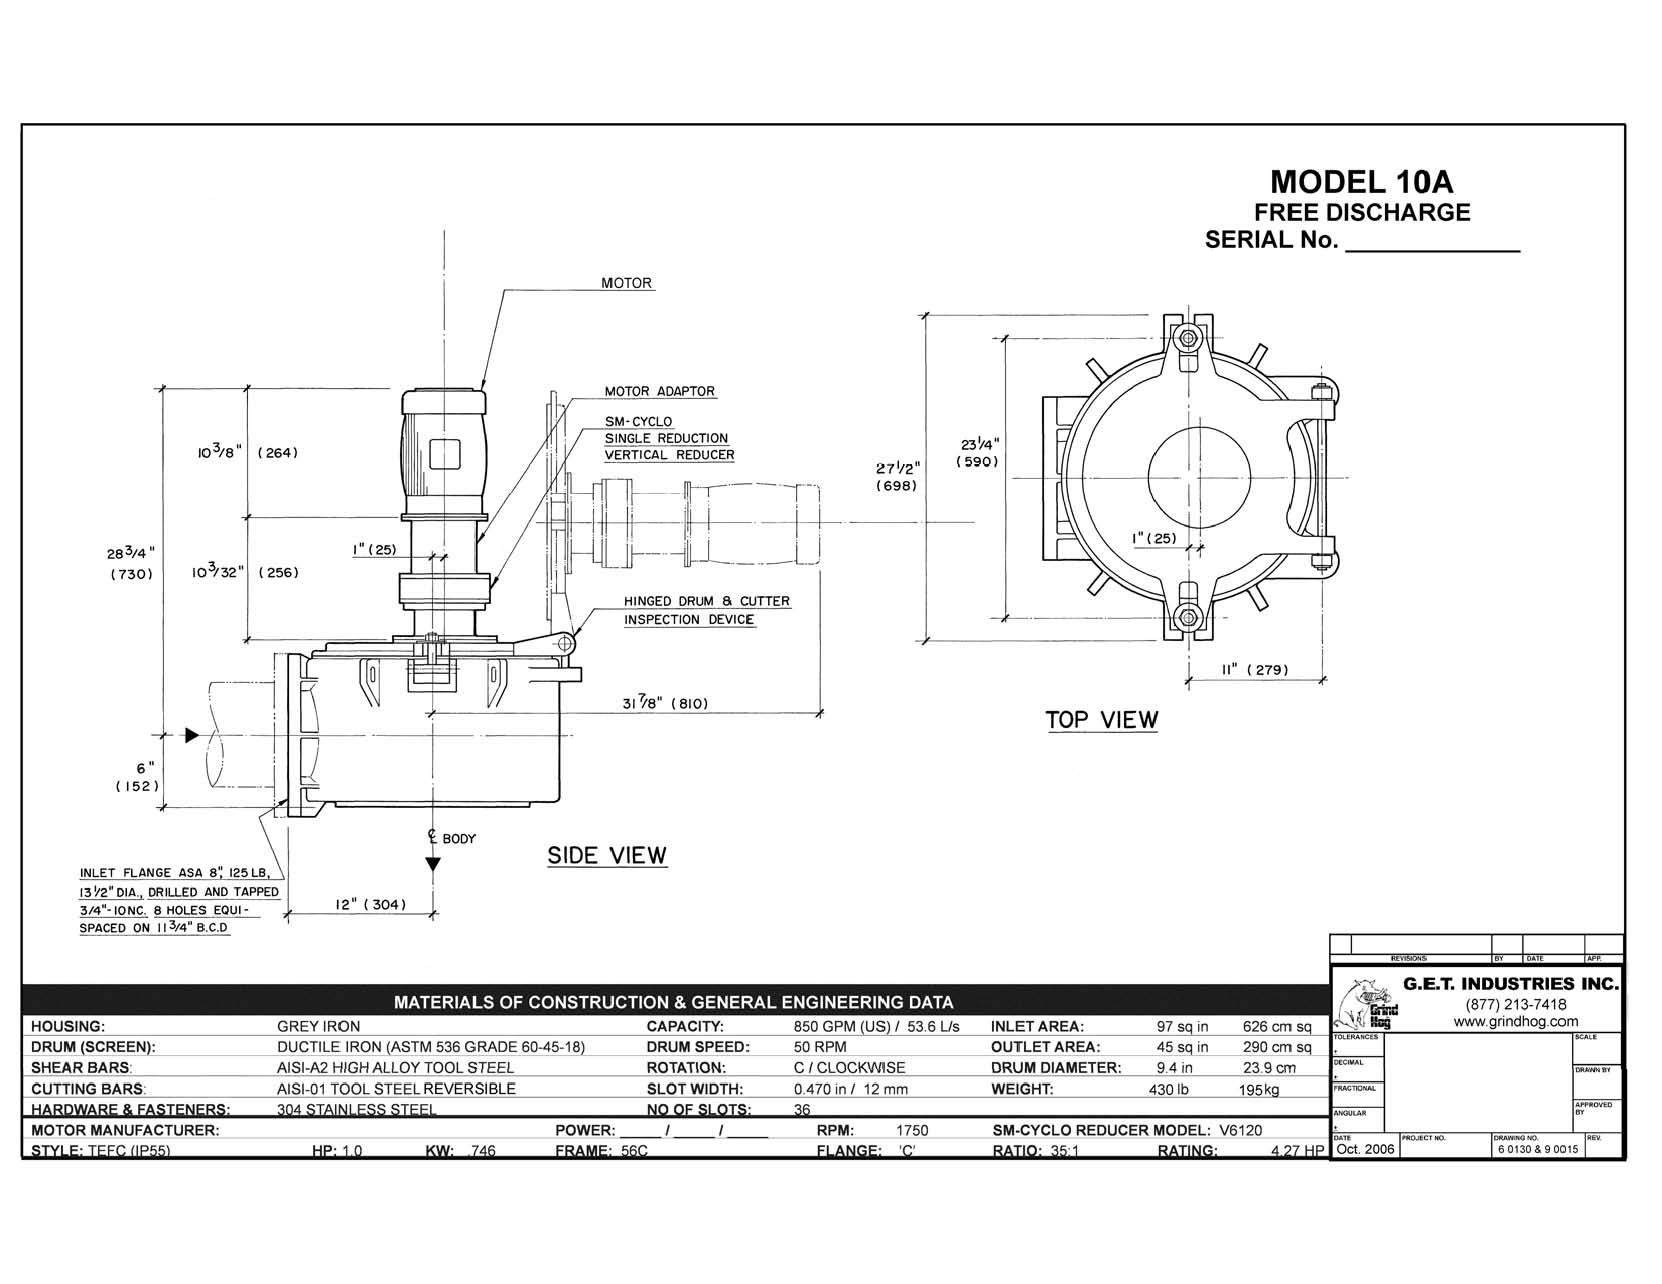 data drawing for Model 10A